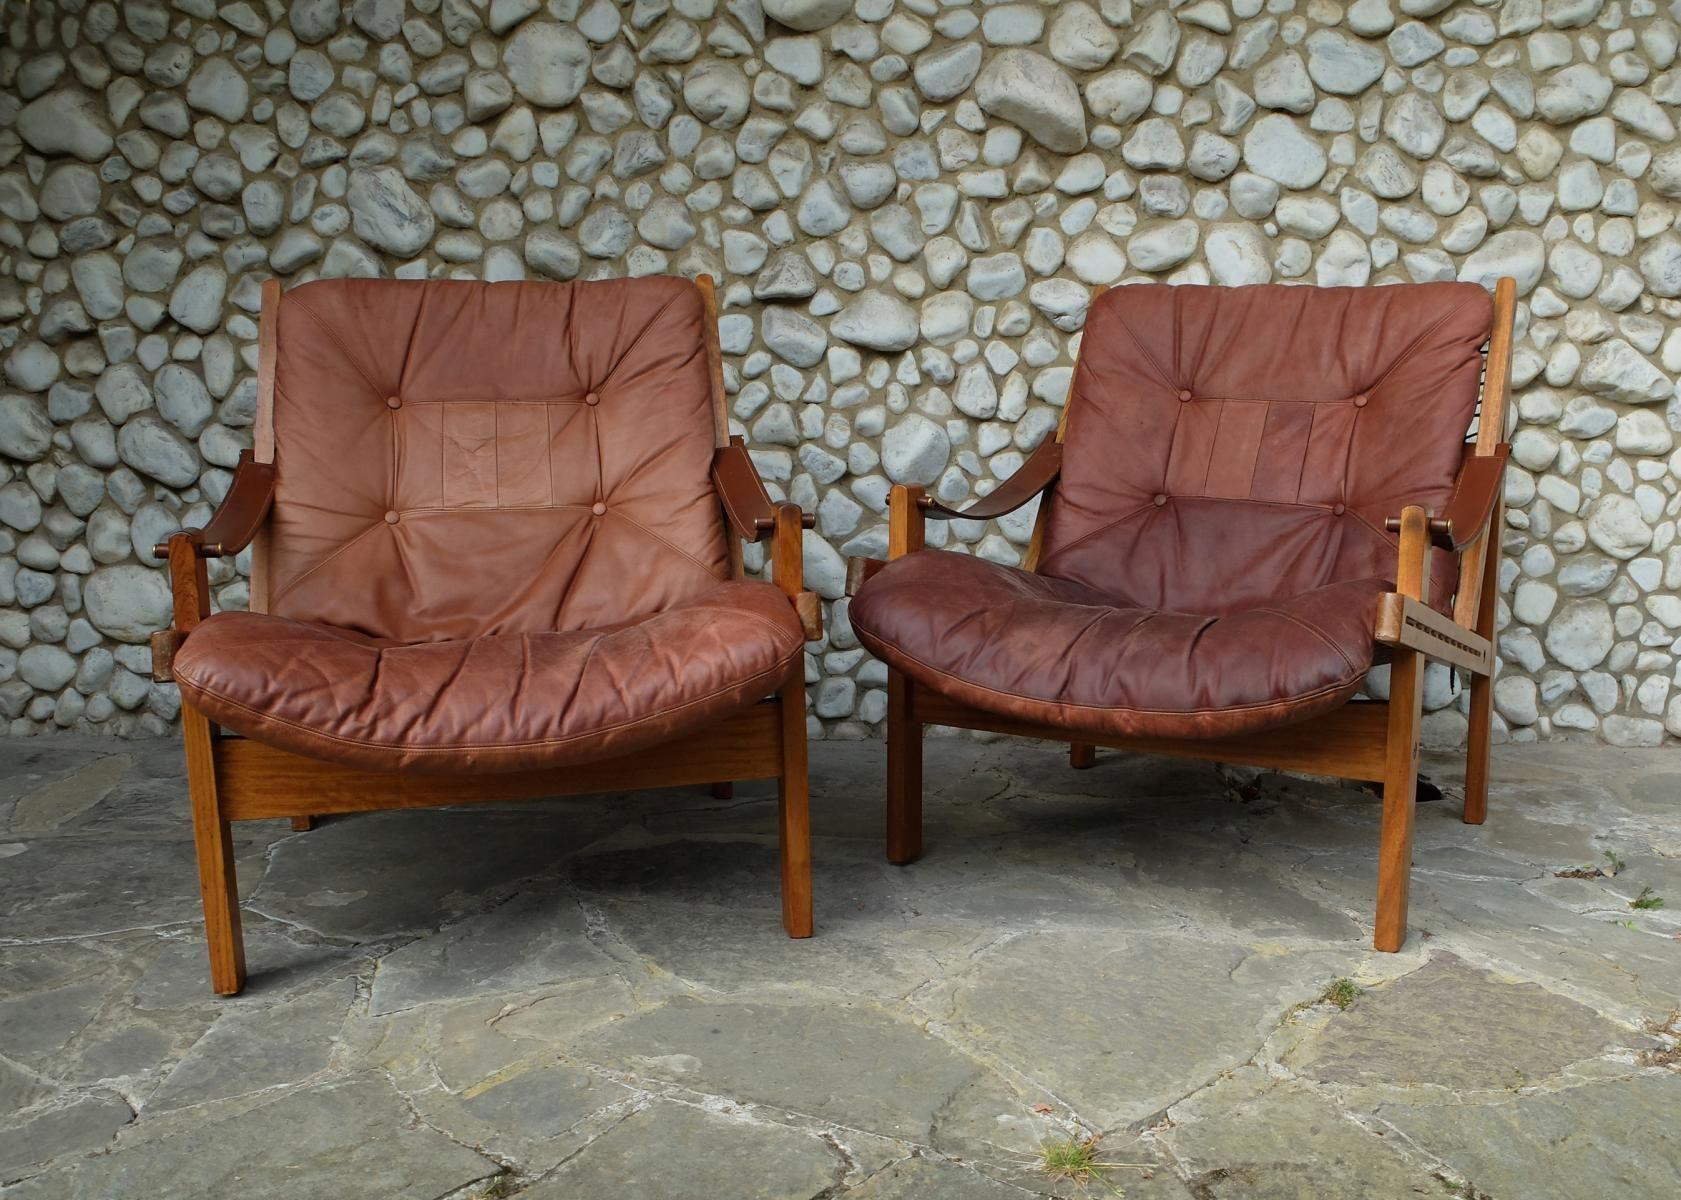 Scandinavian Hunter Lounge Chairs By Torbjorn Afdal For Bruksbo 1960s Set Of 2 1 Vintage Scandinavian Furniture Chairs For Sale Lounge Chair